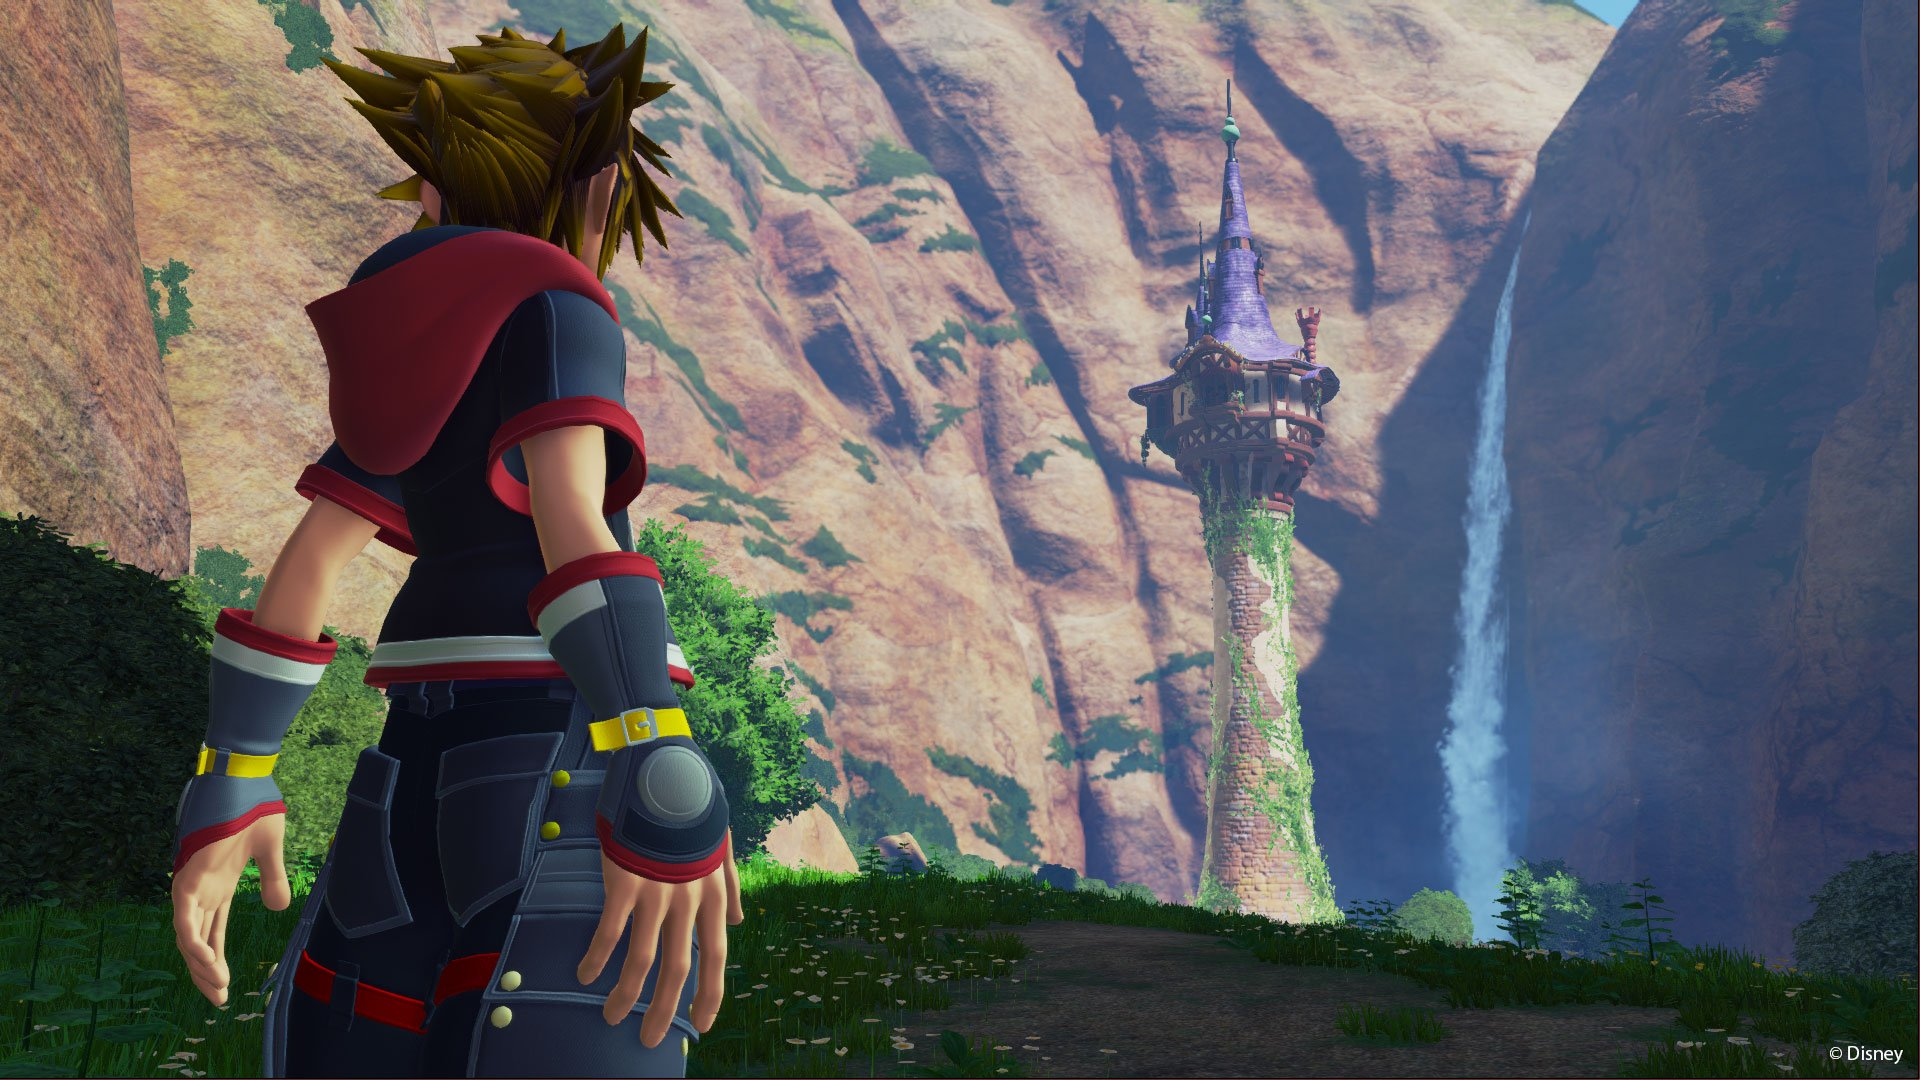 Our #6 pick is the Kingdom of Corona world in Kingdom Hearts 3.